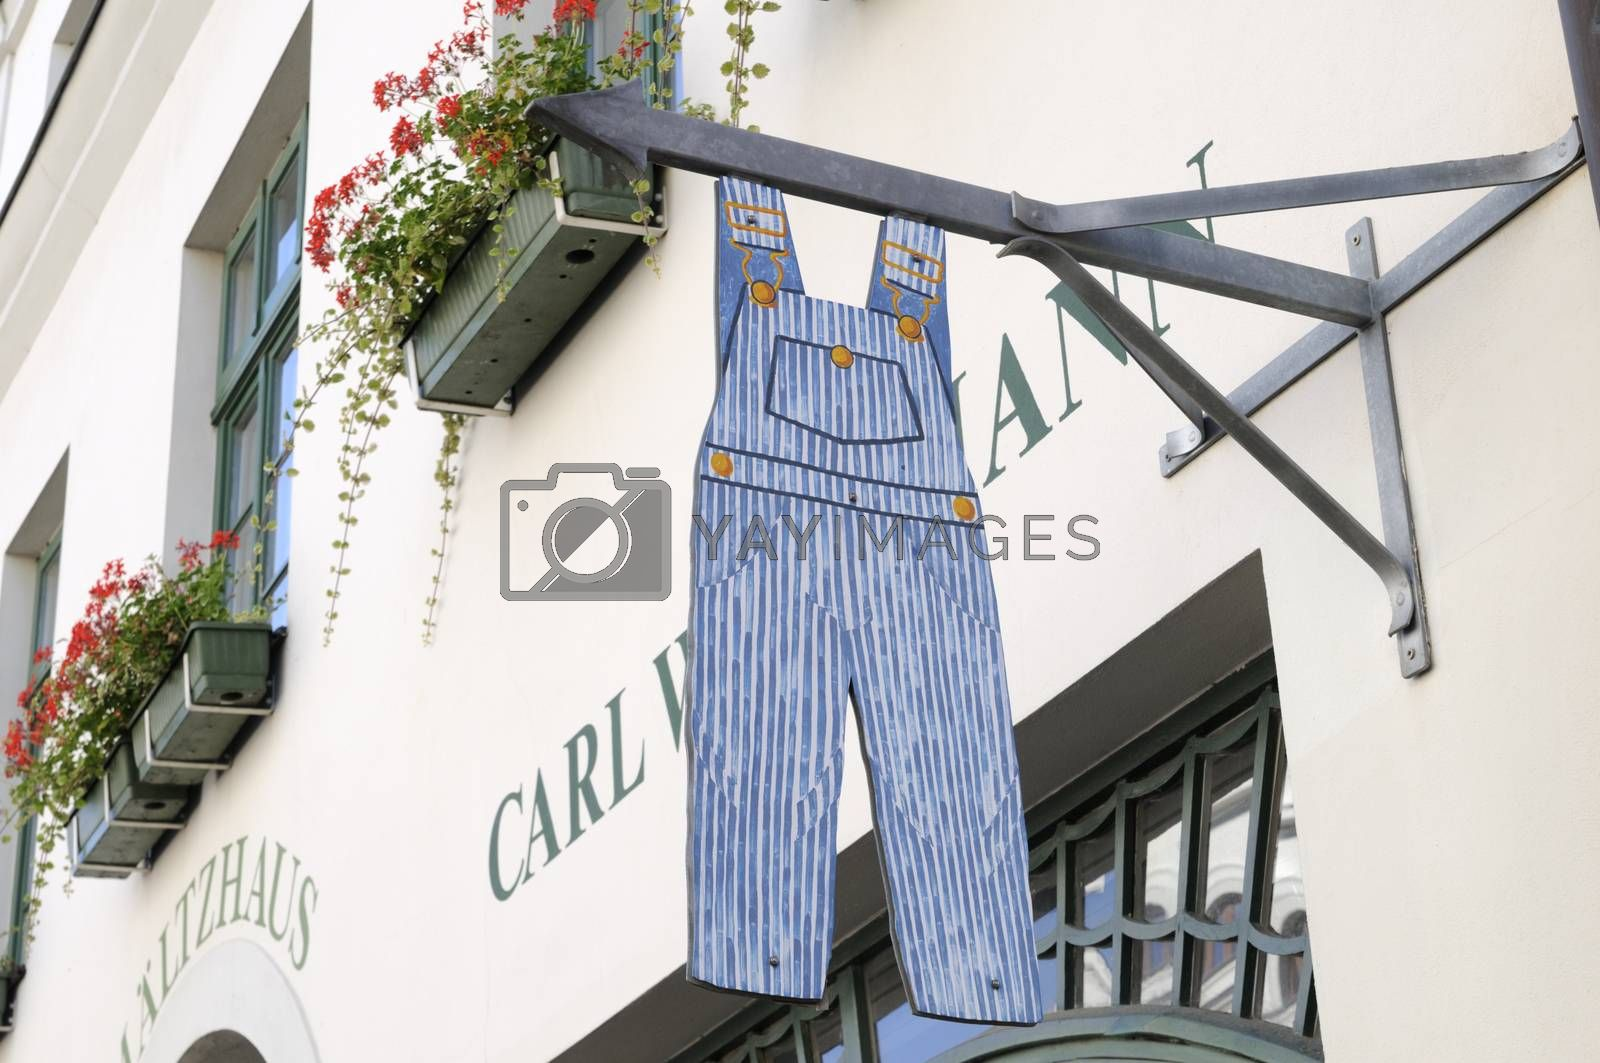 Shop sign in form of a dungarees.